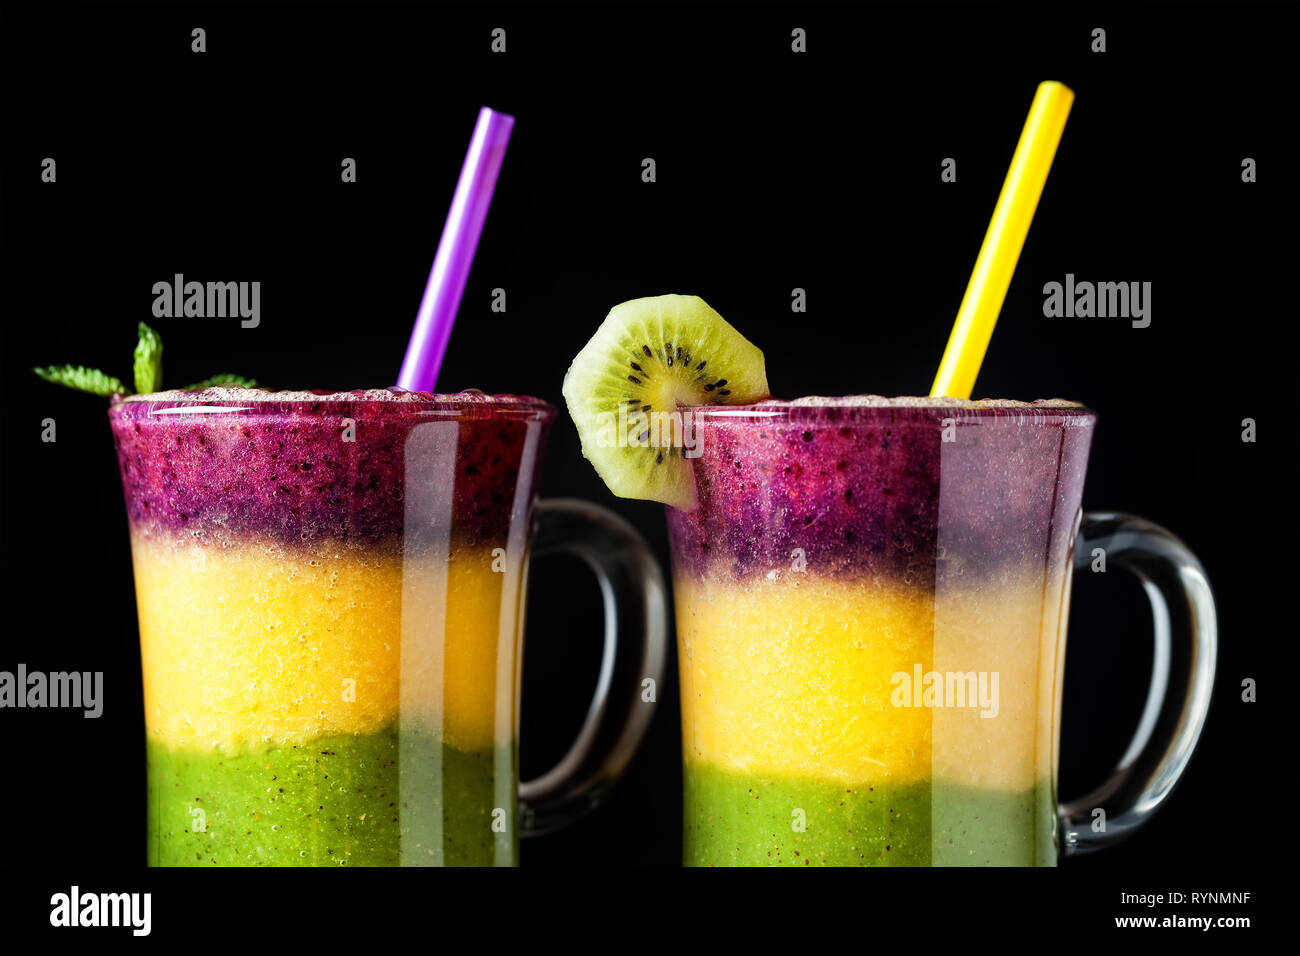 Two glass of smoothie with colorful layers from kiwi, oranges and blackberry on black background close up Stock Photo